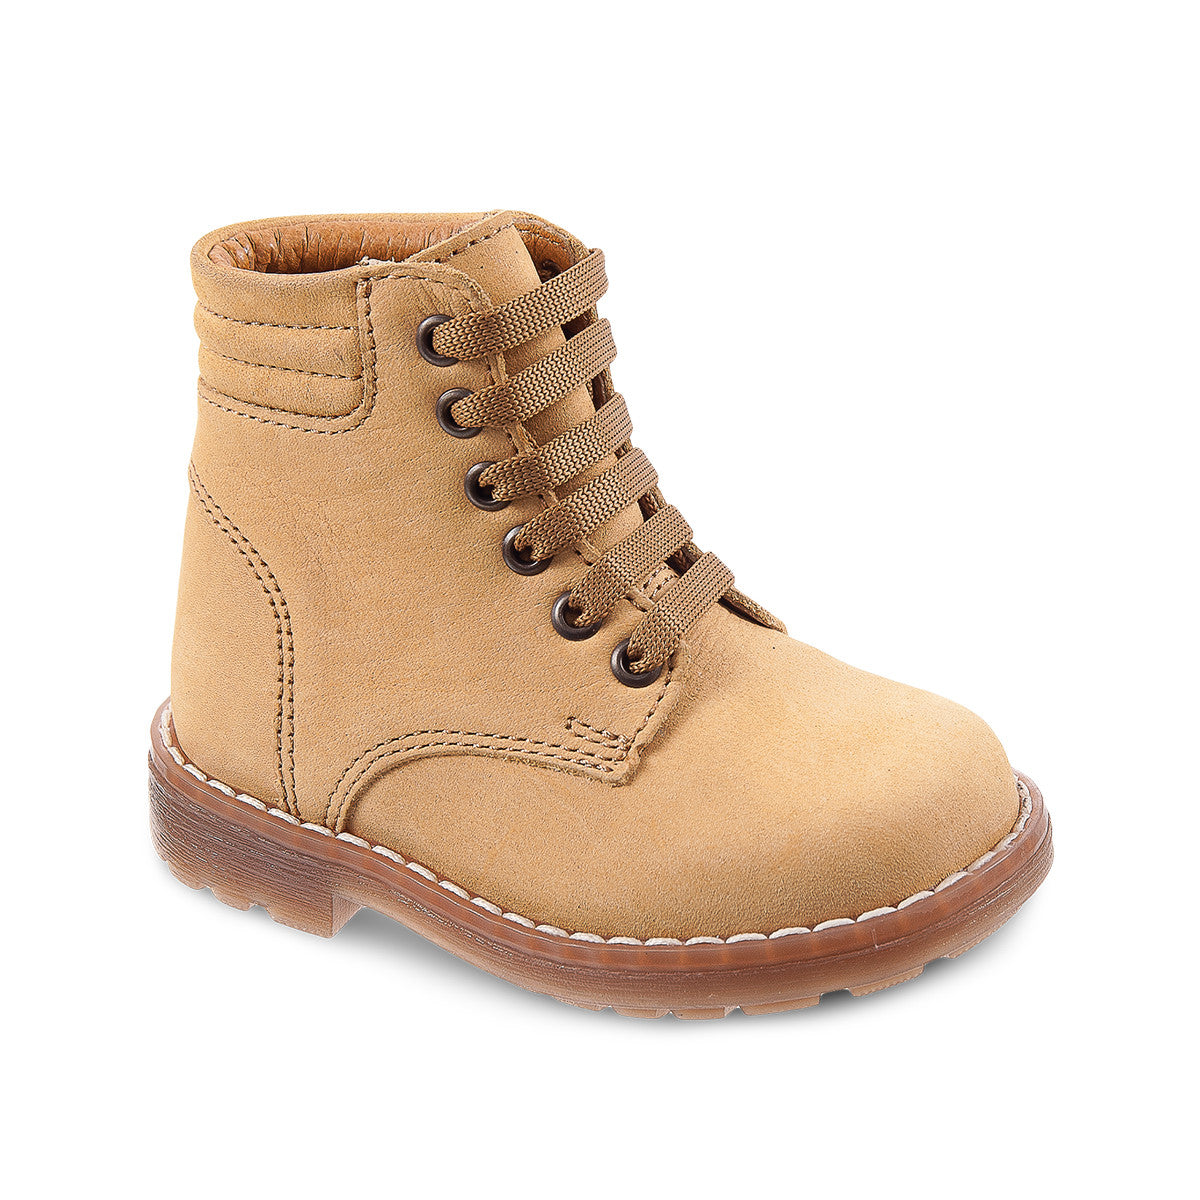 2efa87f0b DG-1403 - Tan Nubuck Leather - Dogi® Kids Winter Boots – Dogi Shoes